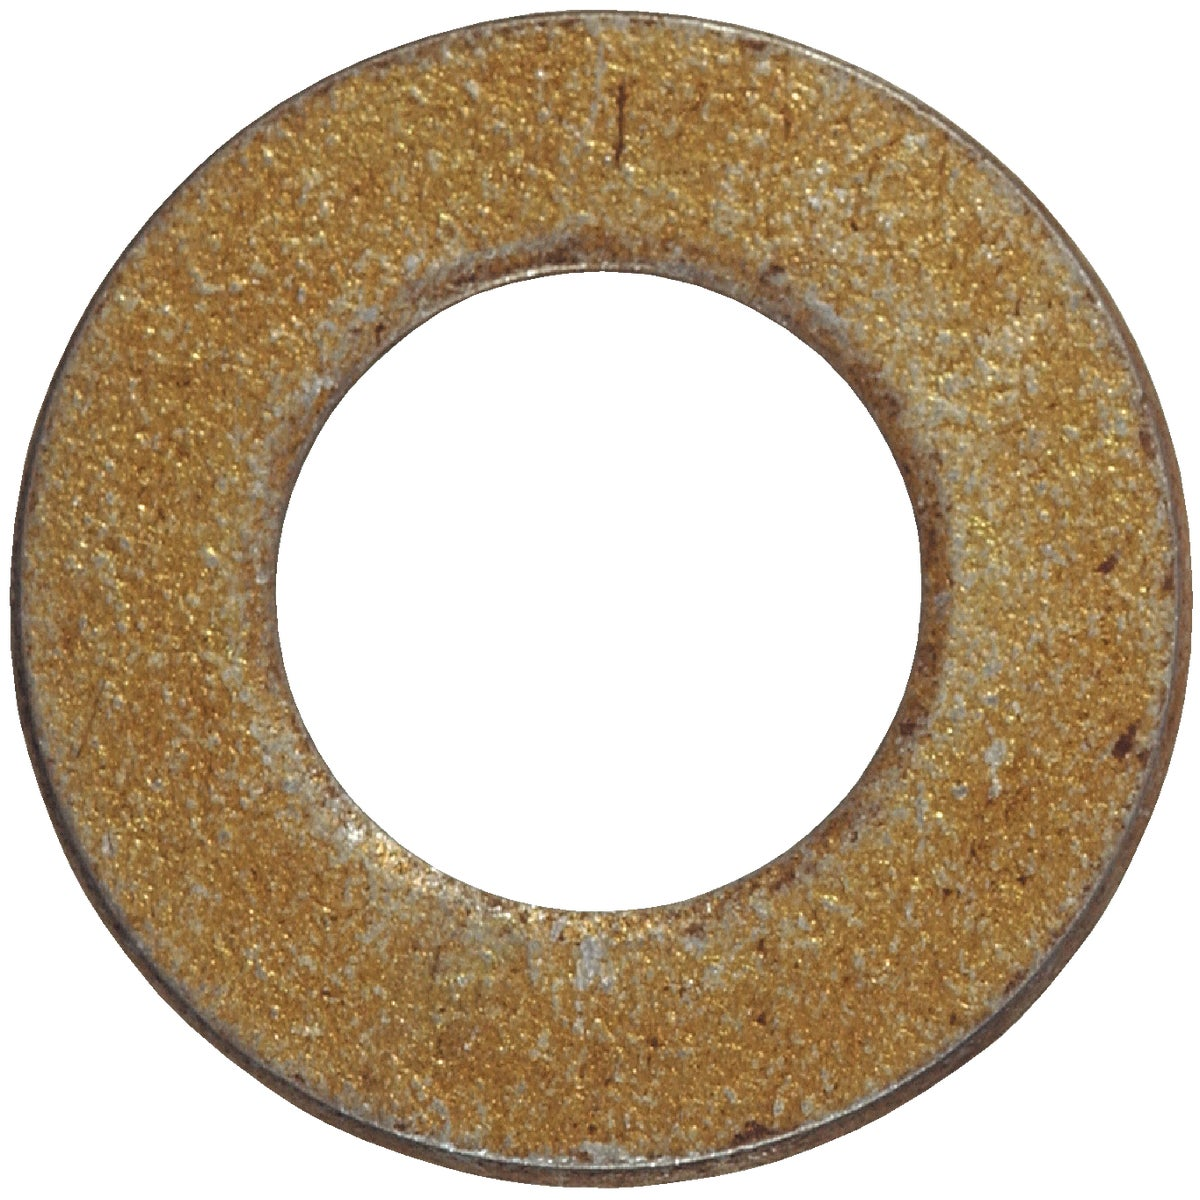 "3/4"" SAE FLAT WASHER - 280330 by Hillman Fastener"